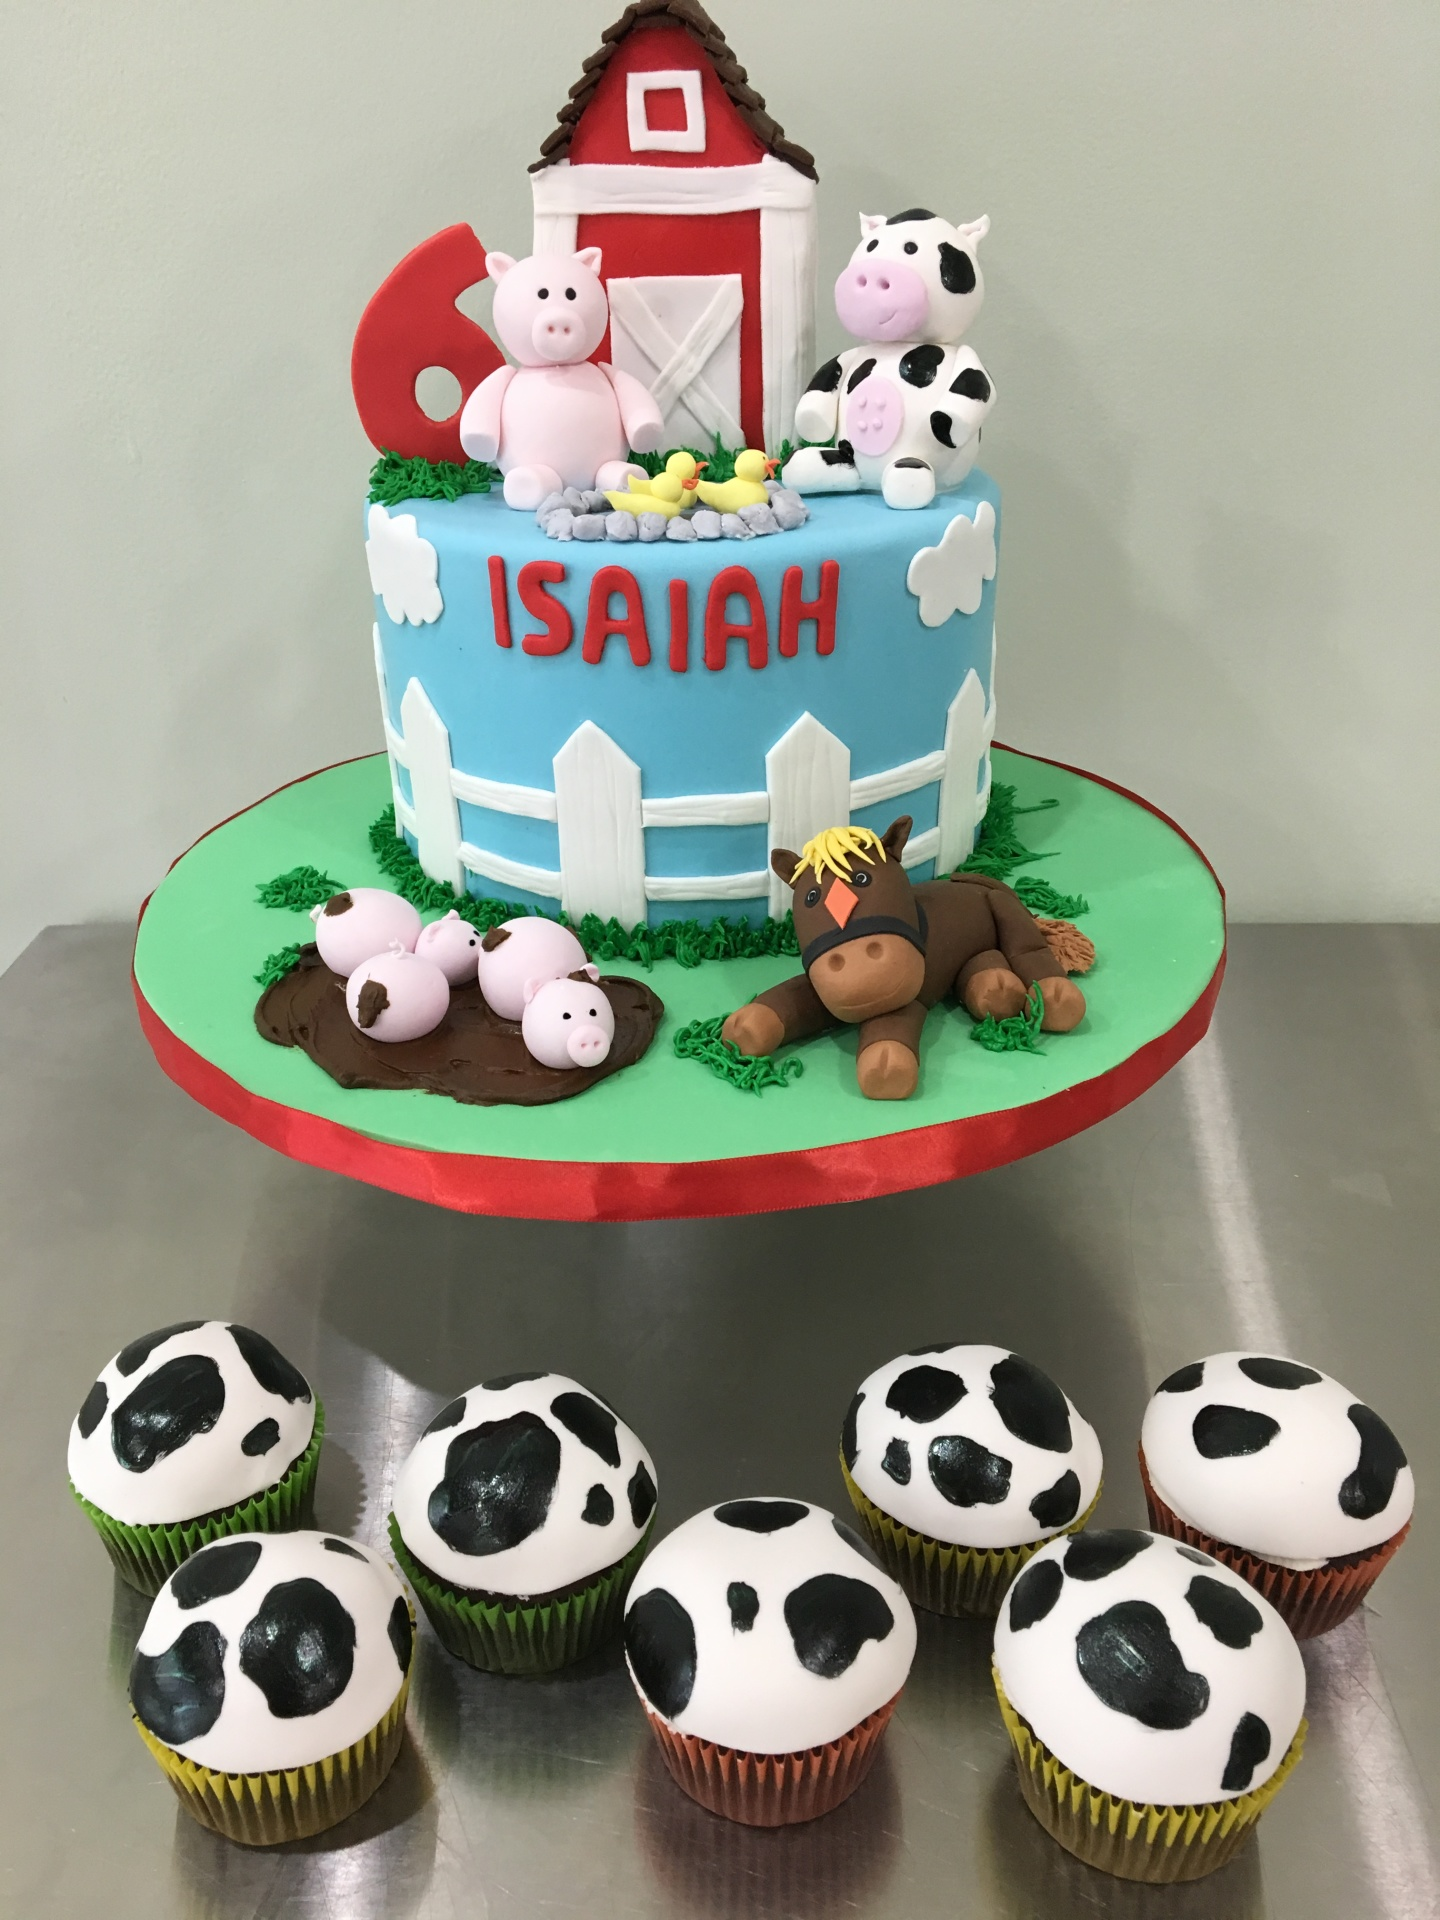 custom cake nj barnyard farm themed cake fondant cow pigs horse birthday cake